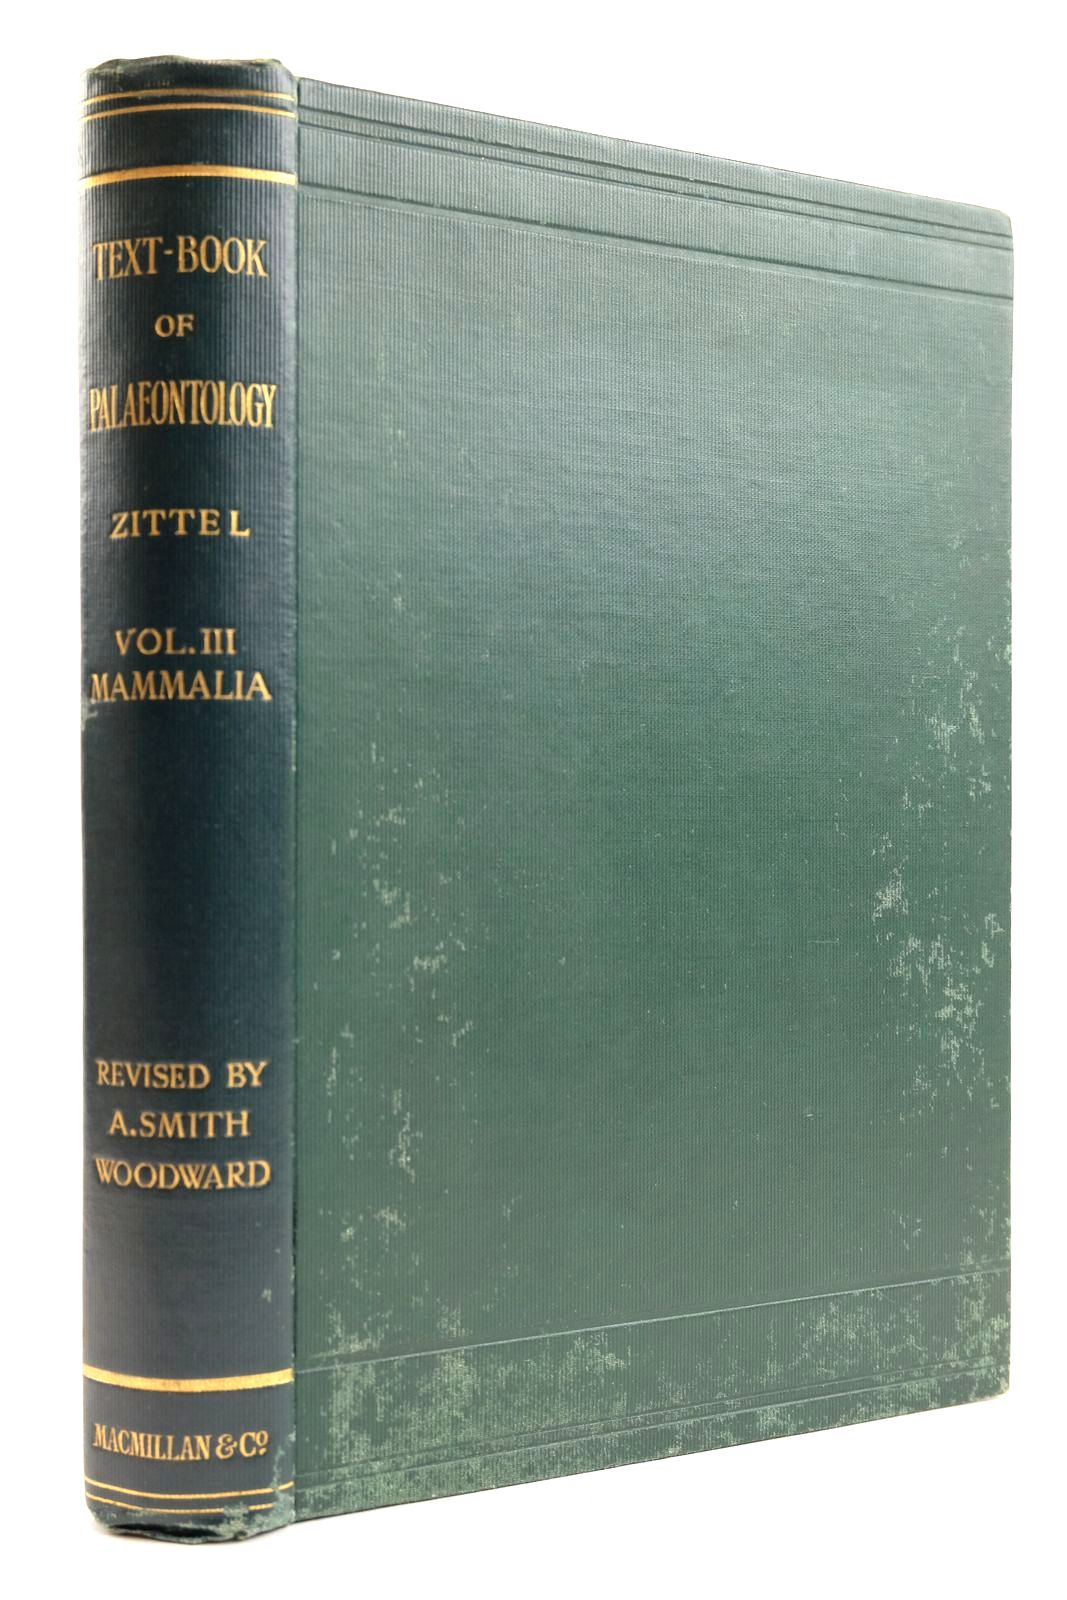 Photo of TEXT-BOOK OF PALAEONTOLOGY VOL. III MAMMALIA written by Von Zittel, Karl A. Schlosser, Max et al, published by Macmillan & Co. Ltd. (STOCK CODE: 2132742)  for sale by Stella & Rose's Books